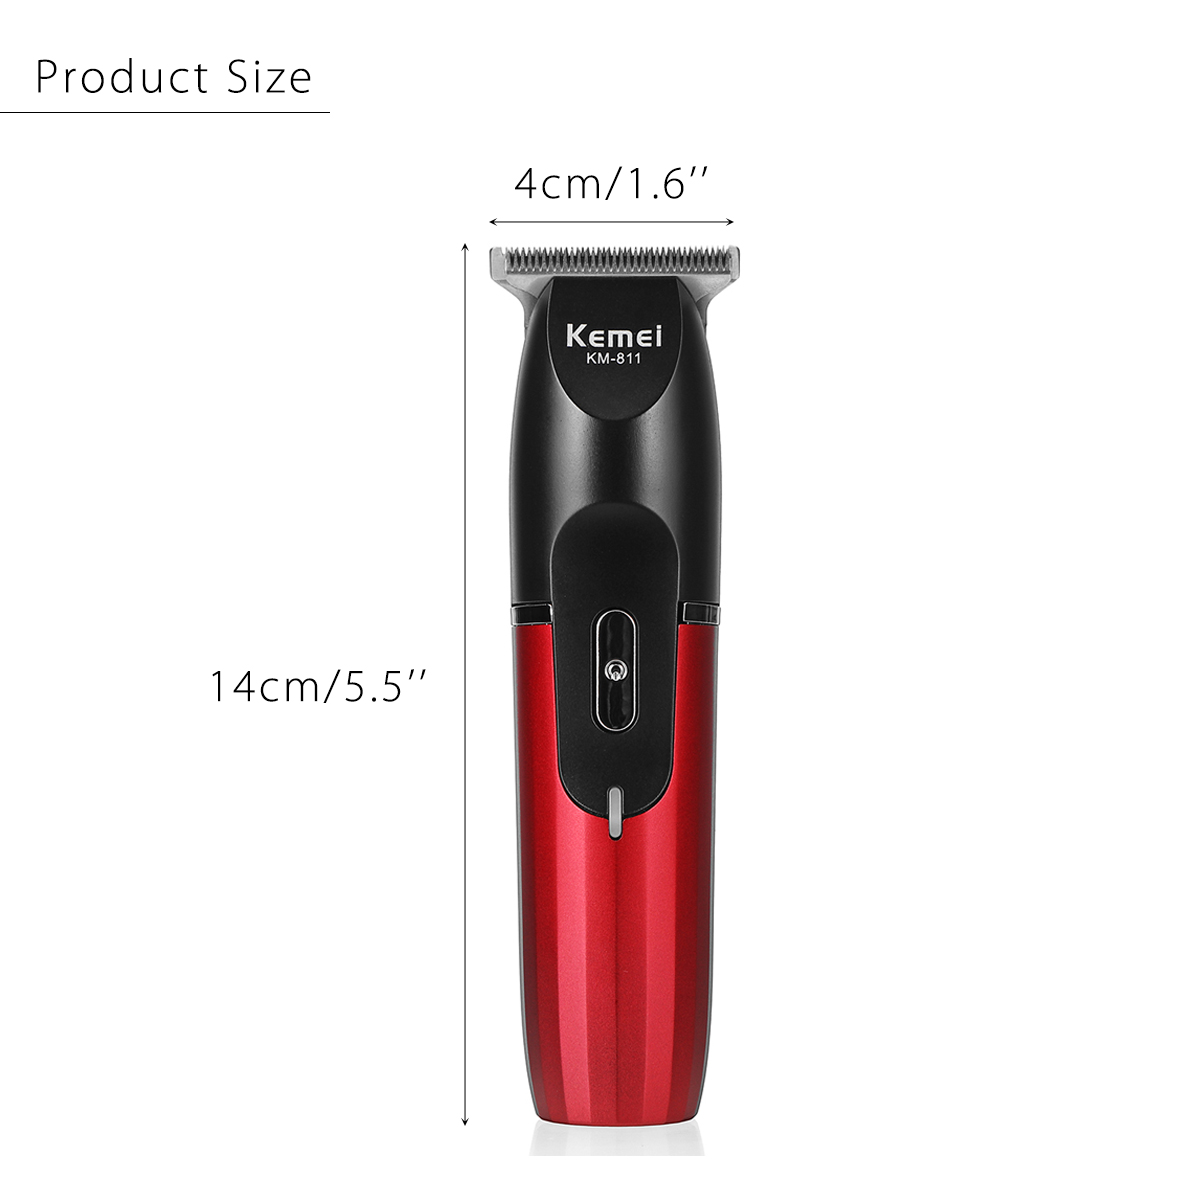 KEMEI KM-811 Hair Trimmer Clipper Rechargeable Cutting